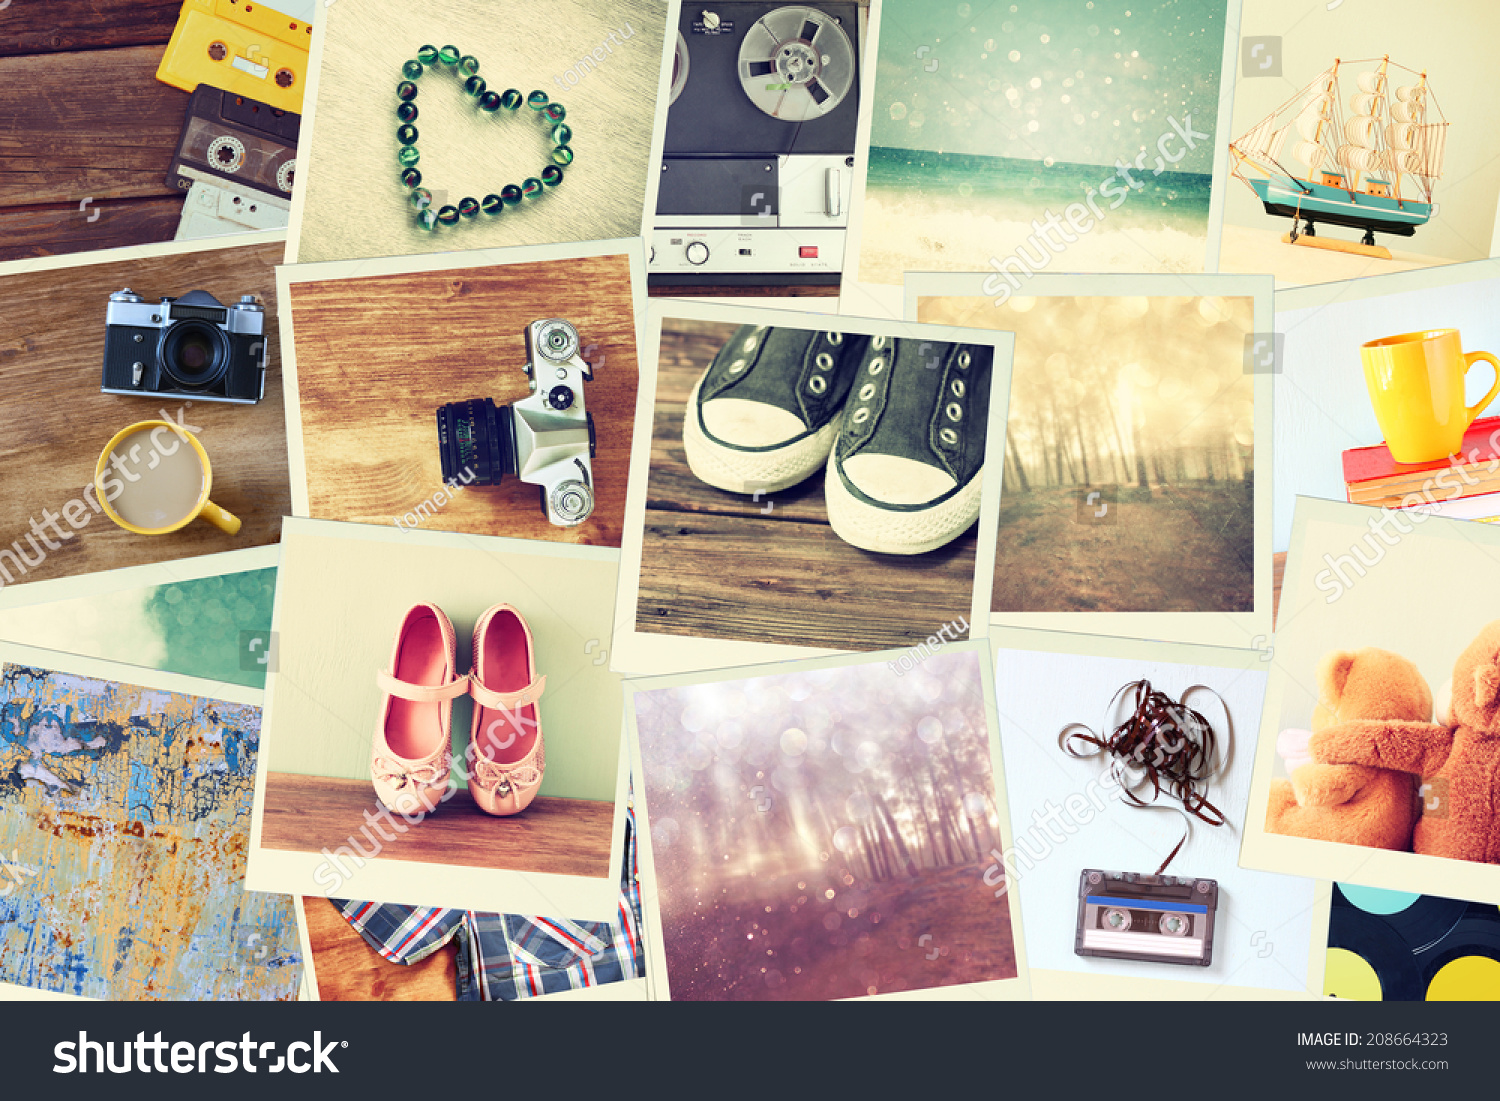 Mosaic Pictures Different Objects Collage Retro Foto de stock (libre ...